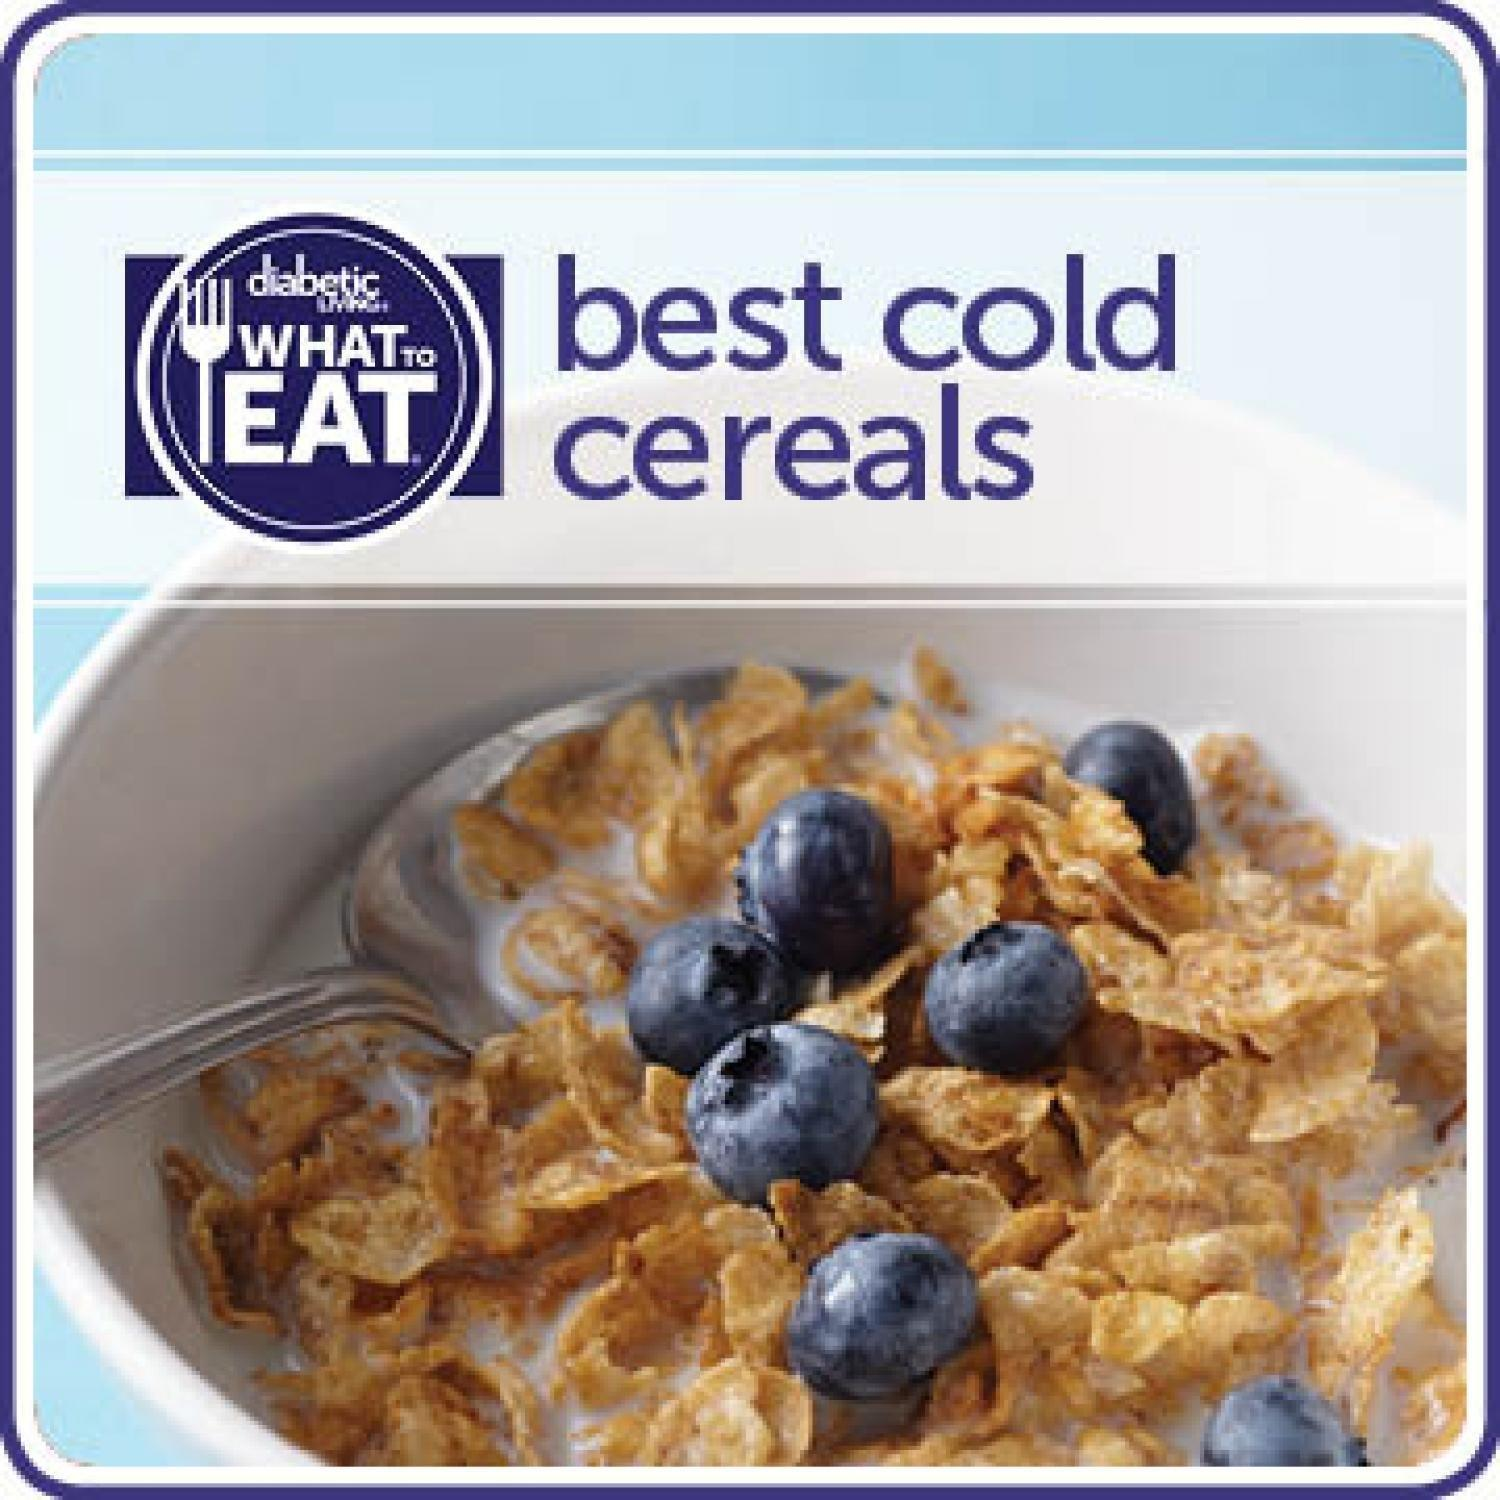 What To Eat With Diabetes: Best Cold Cereals